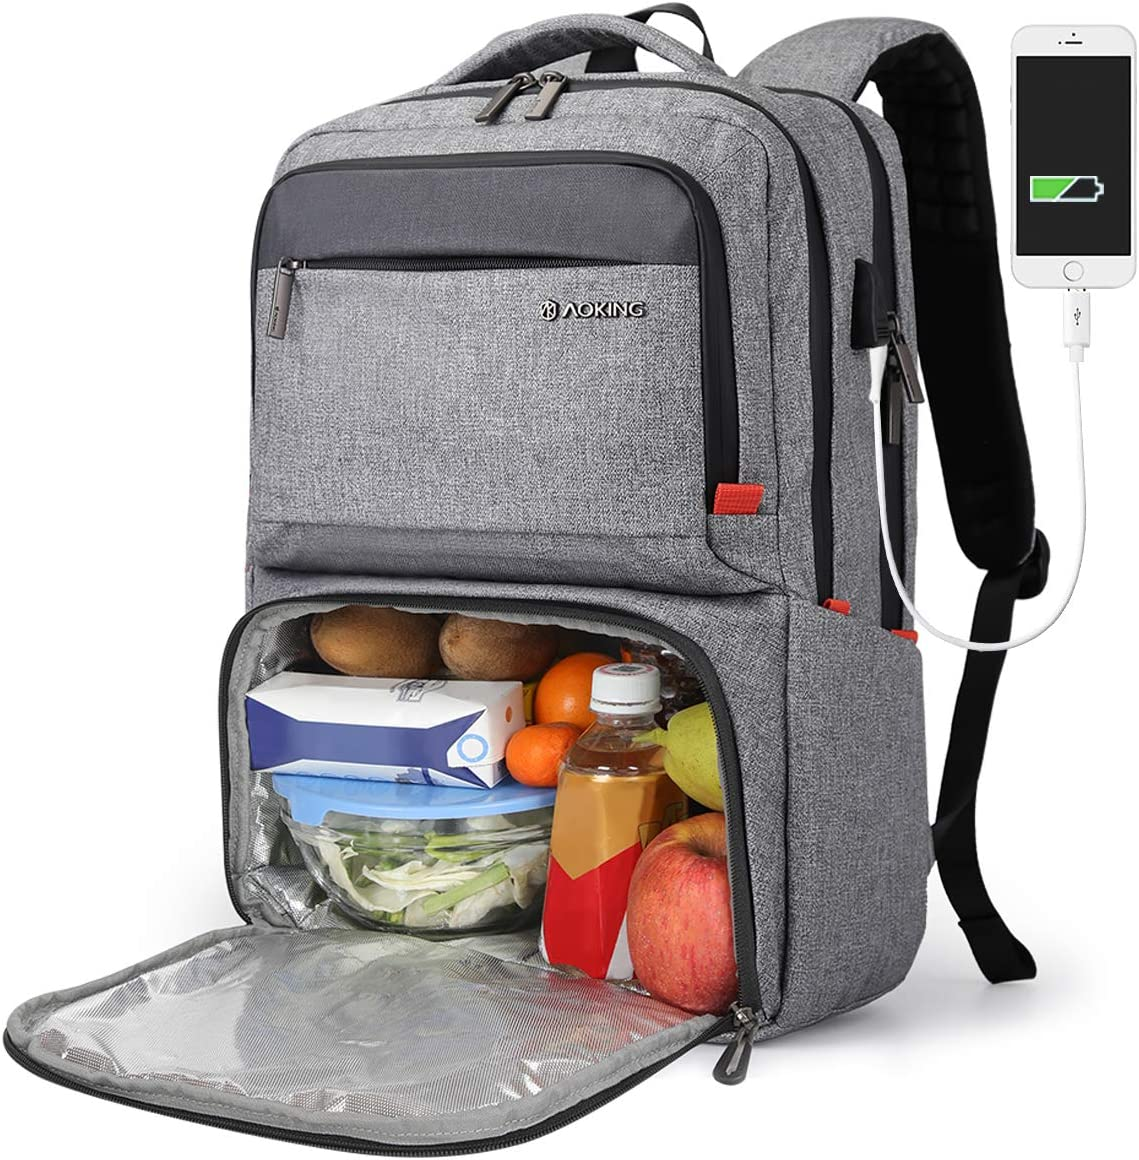 Lunch Backpack for Women, Insulated Cooler backpack with lunch compartment, College School Bookbag with USB Port, Fits 15.6 Inch Laptop, Waterproof Backpack Food Bag for Work Beach Camping Picnics